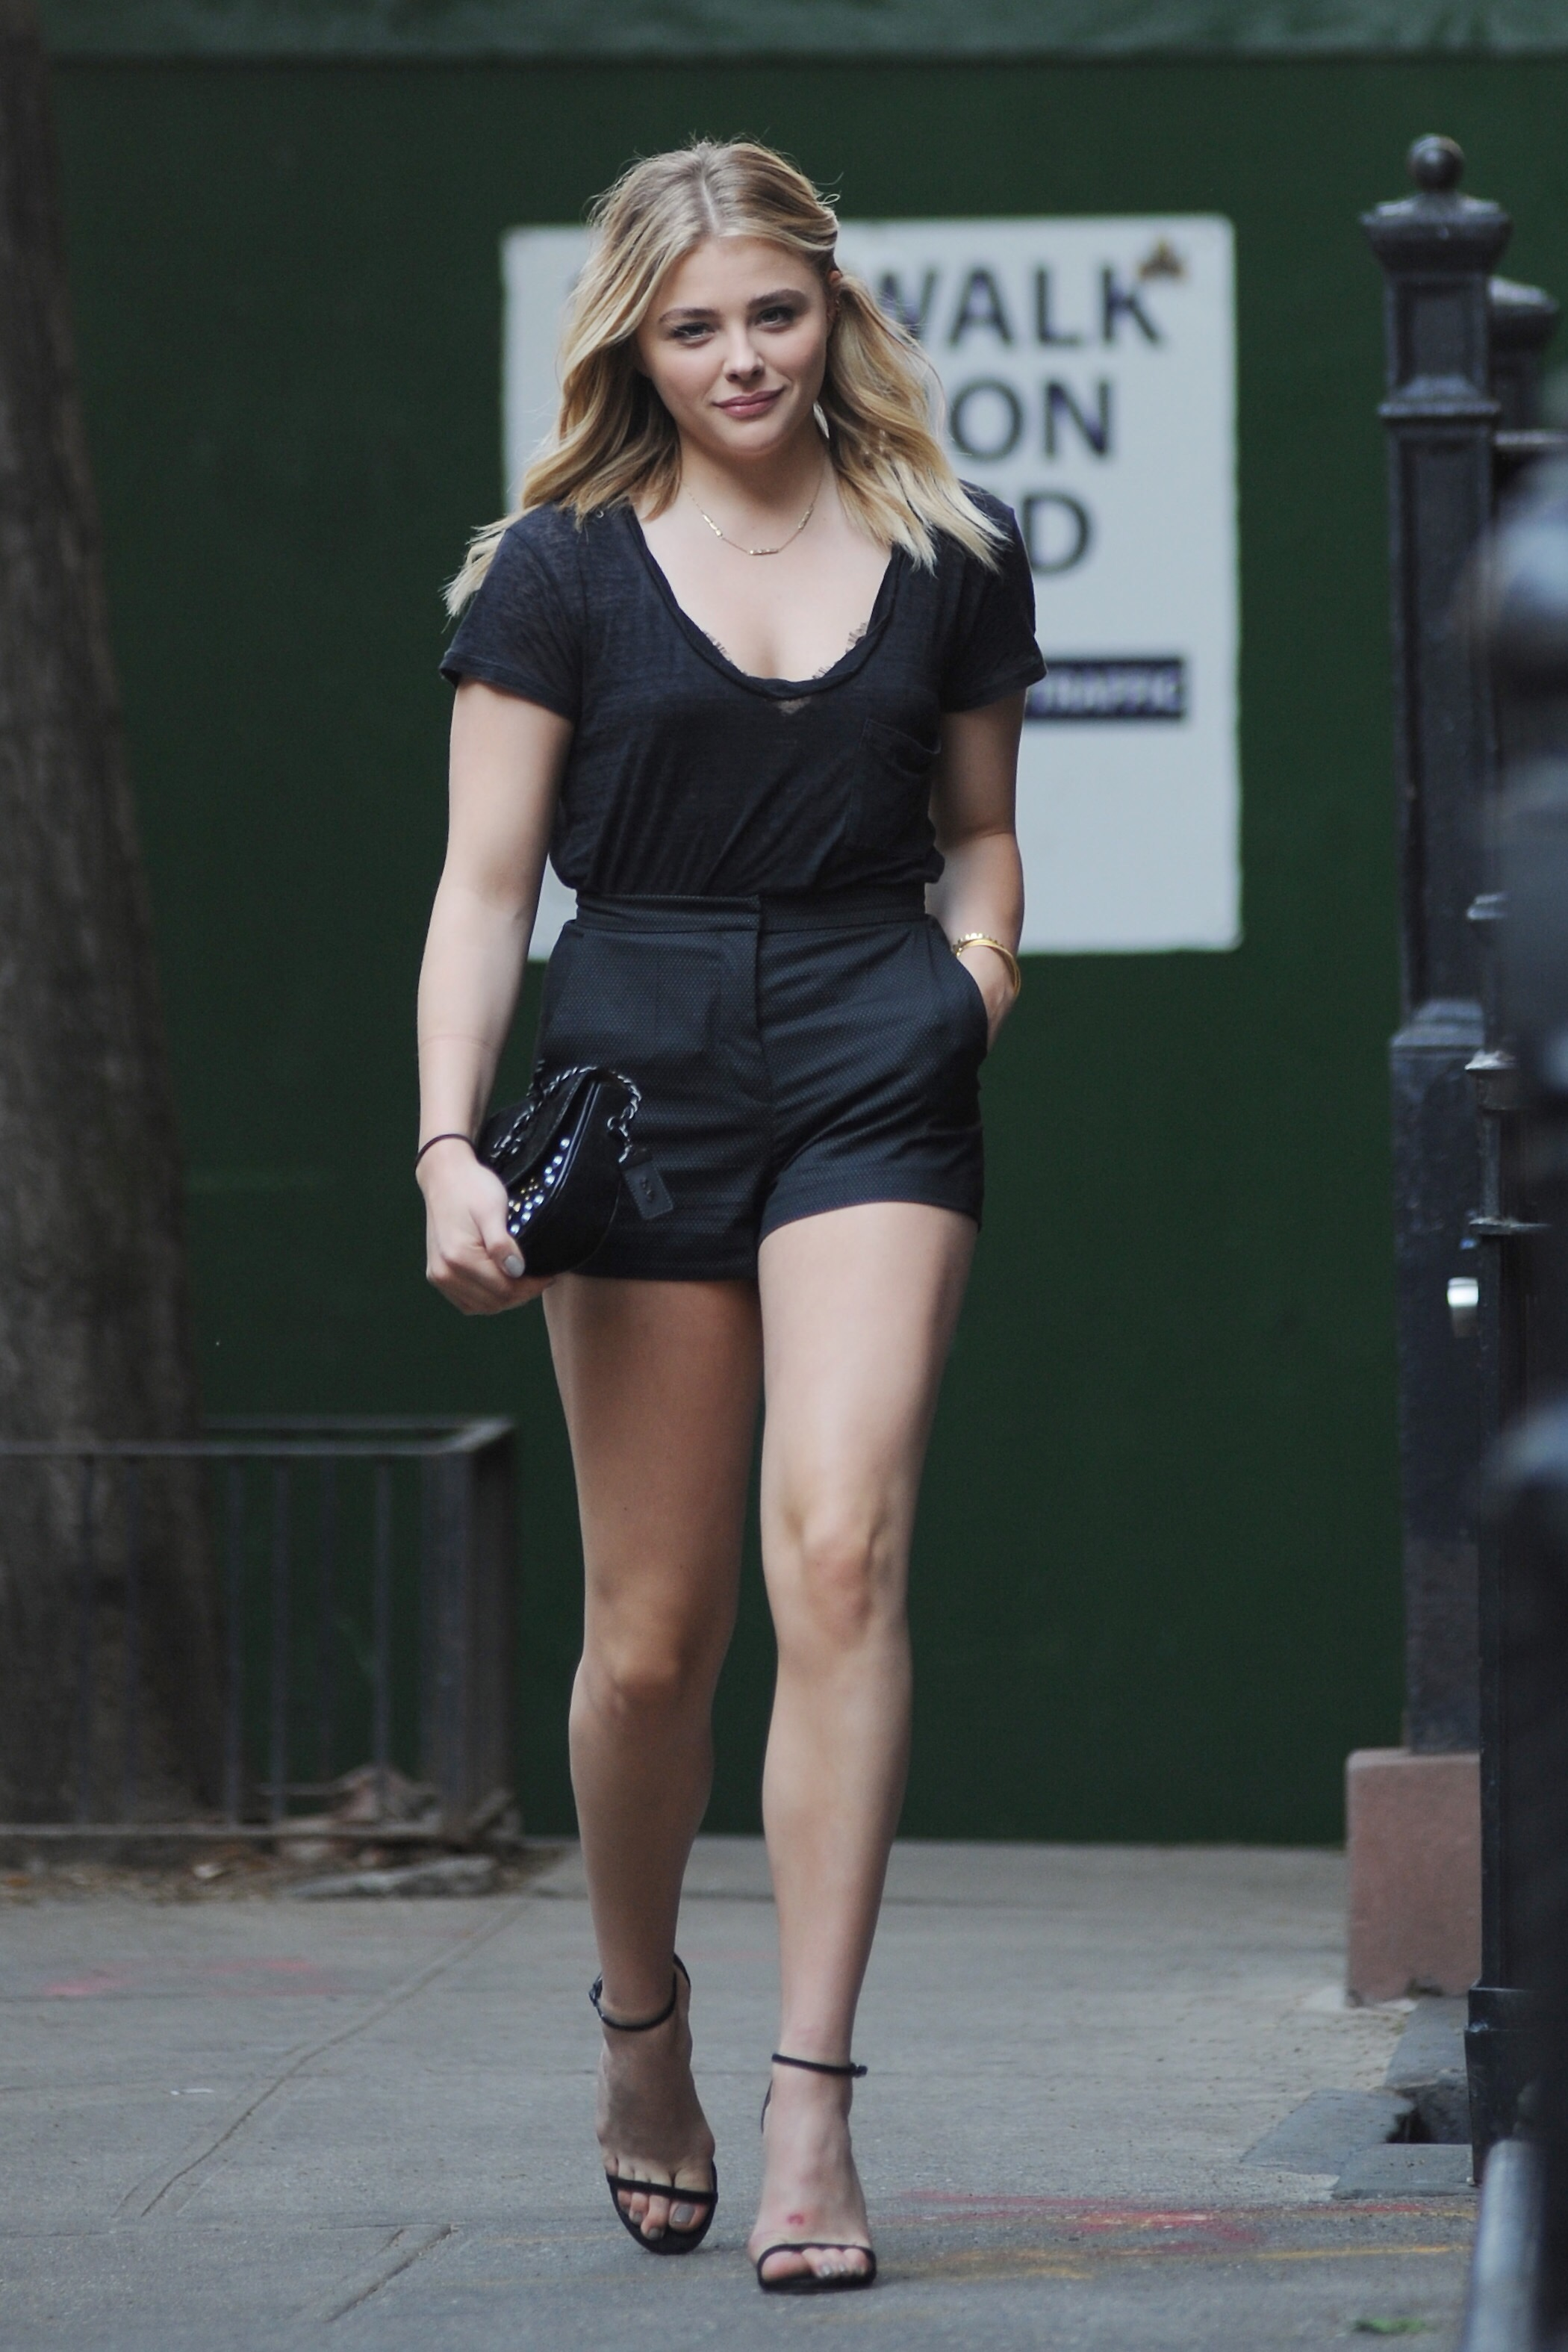 Chlo Grace Moretz  Only In High Heels-8798